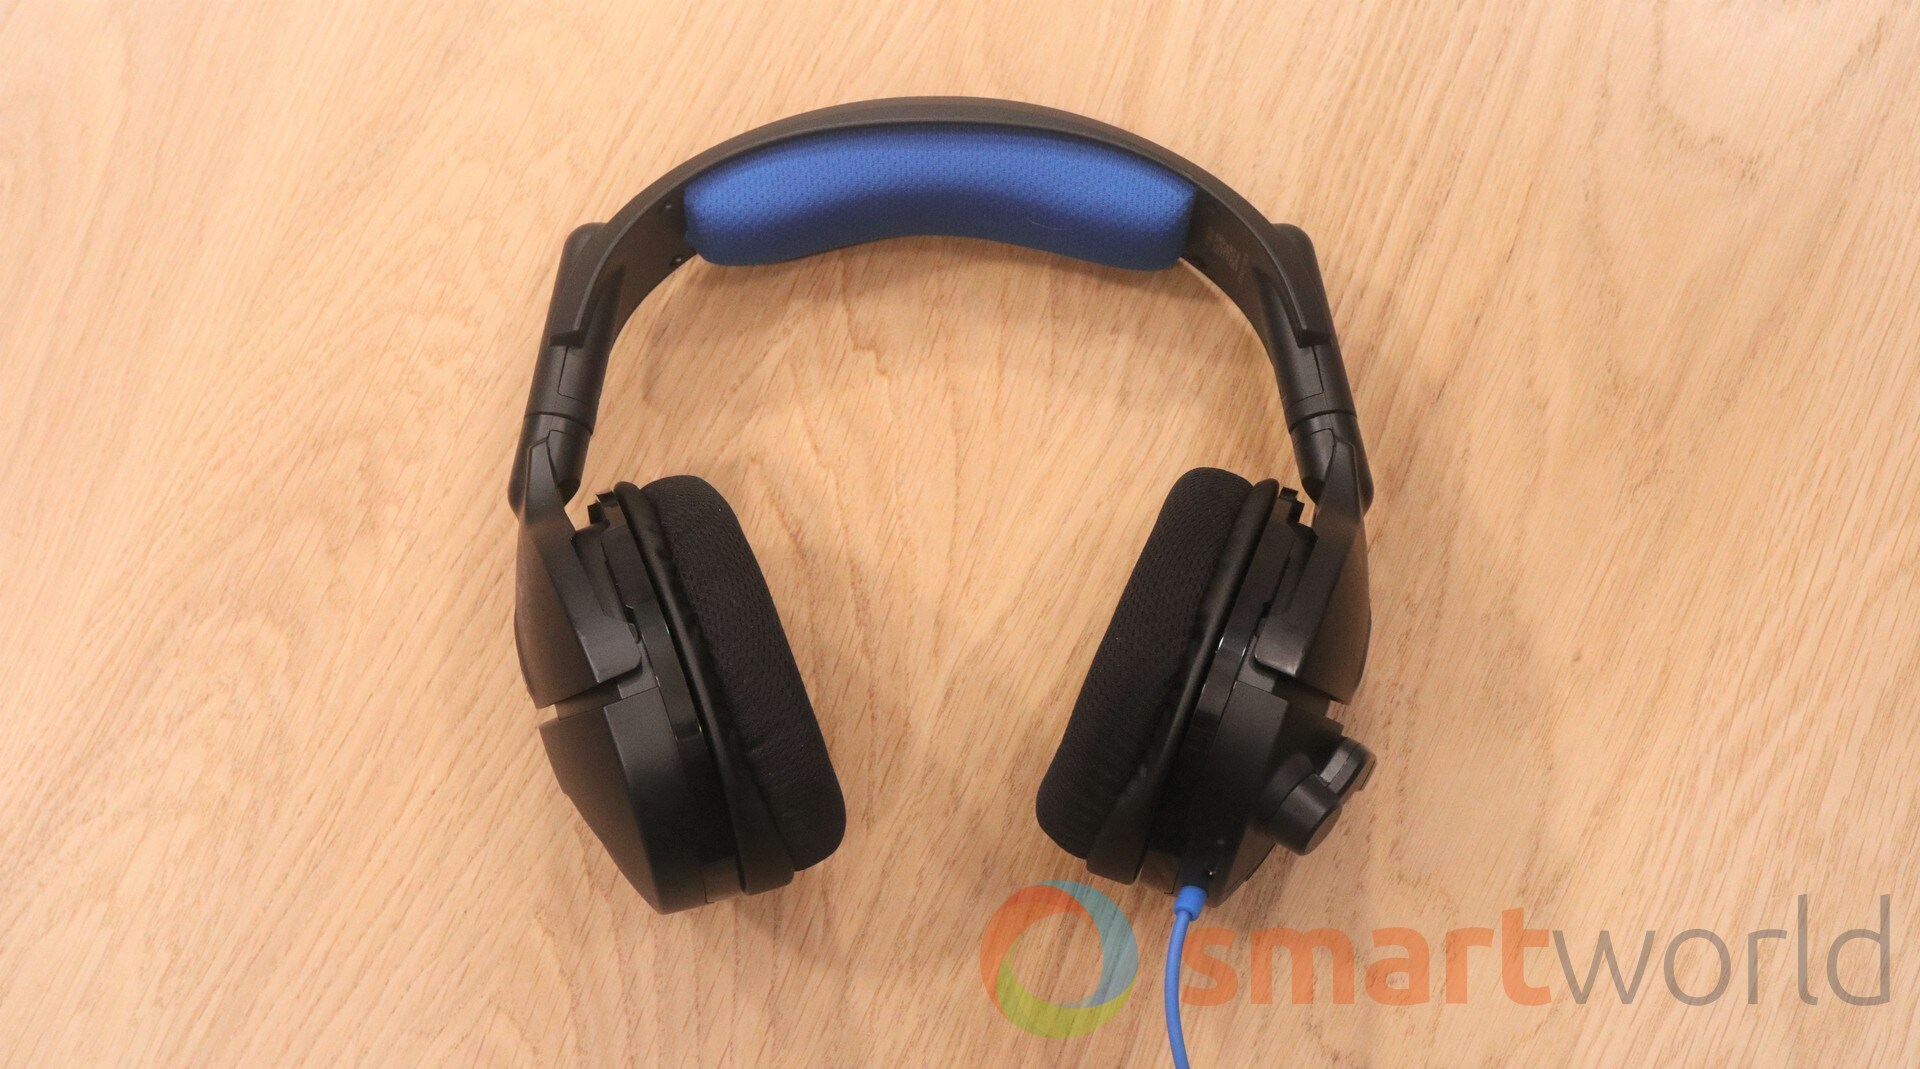 Recensione Turtle Beach Stealth 300 panoramica (2)